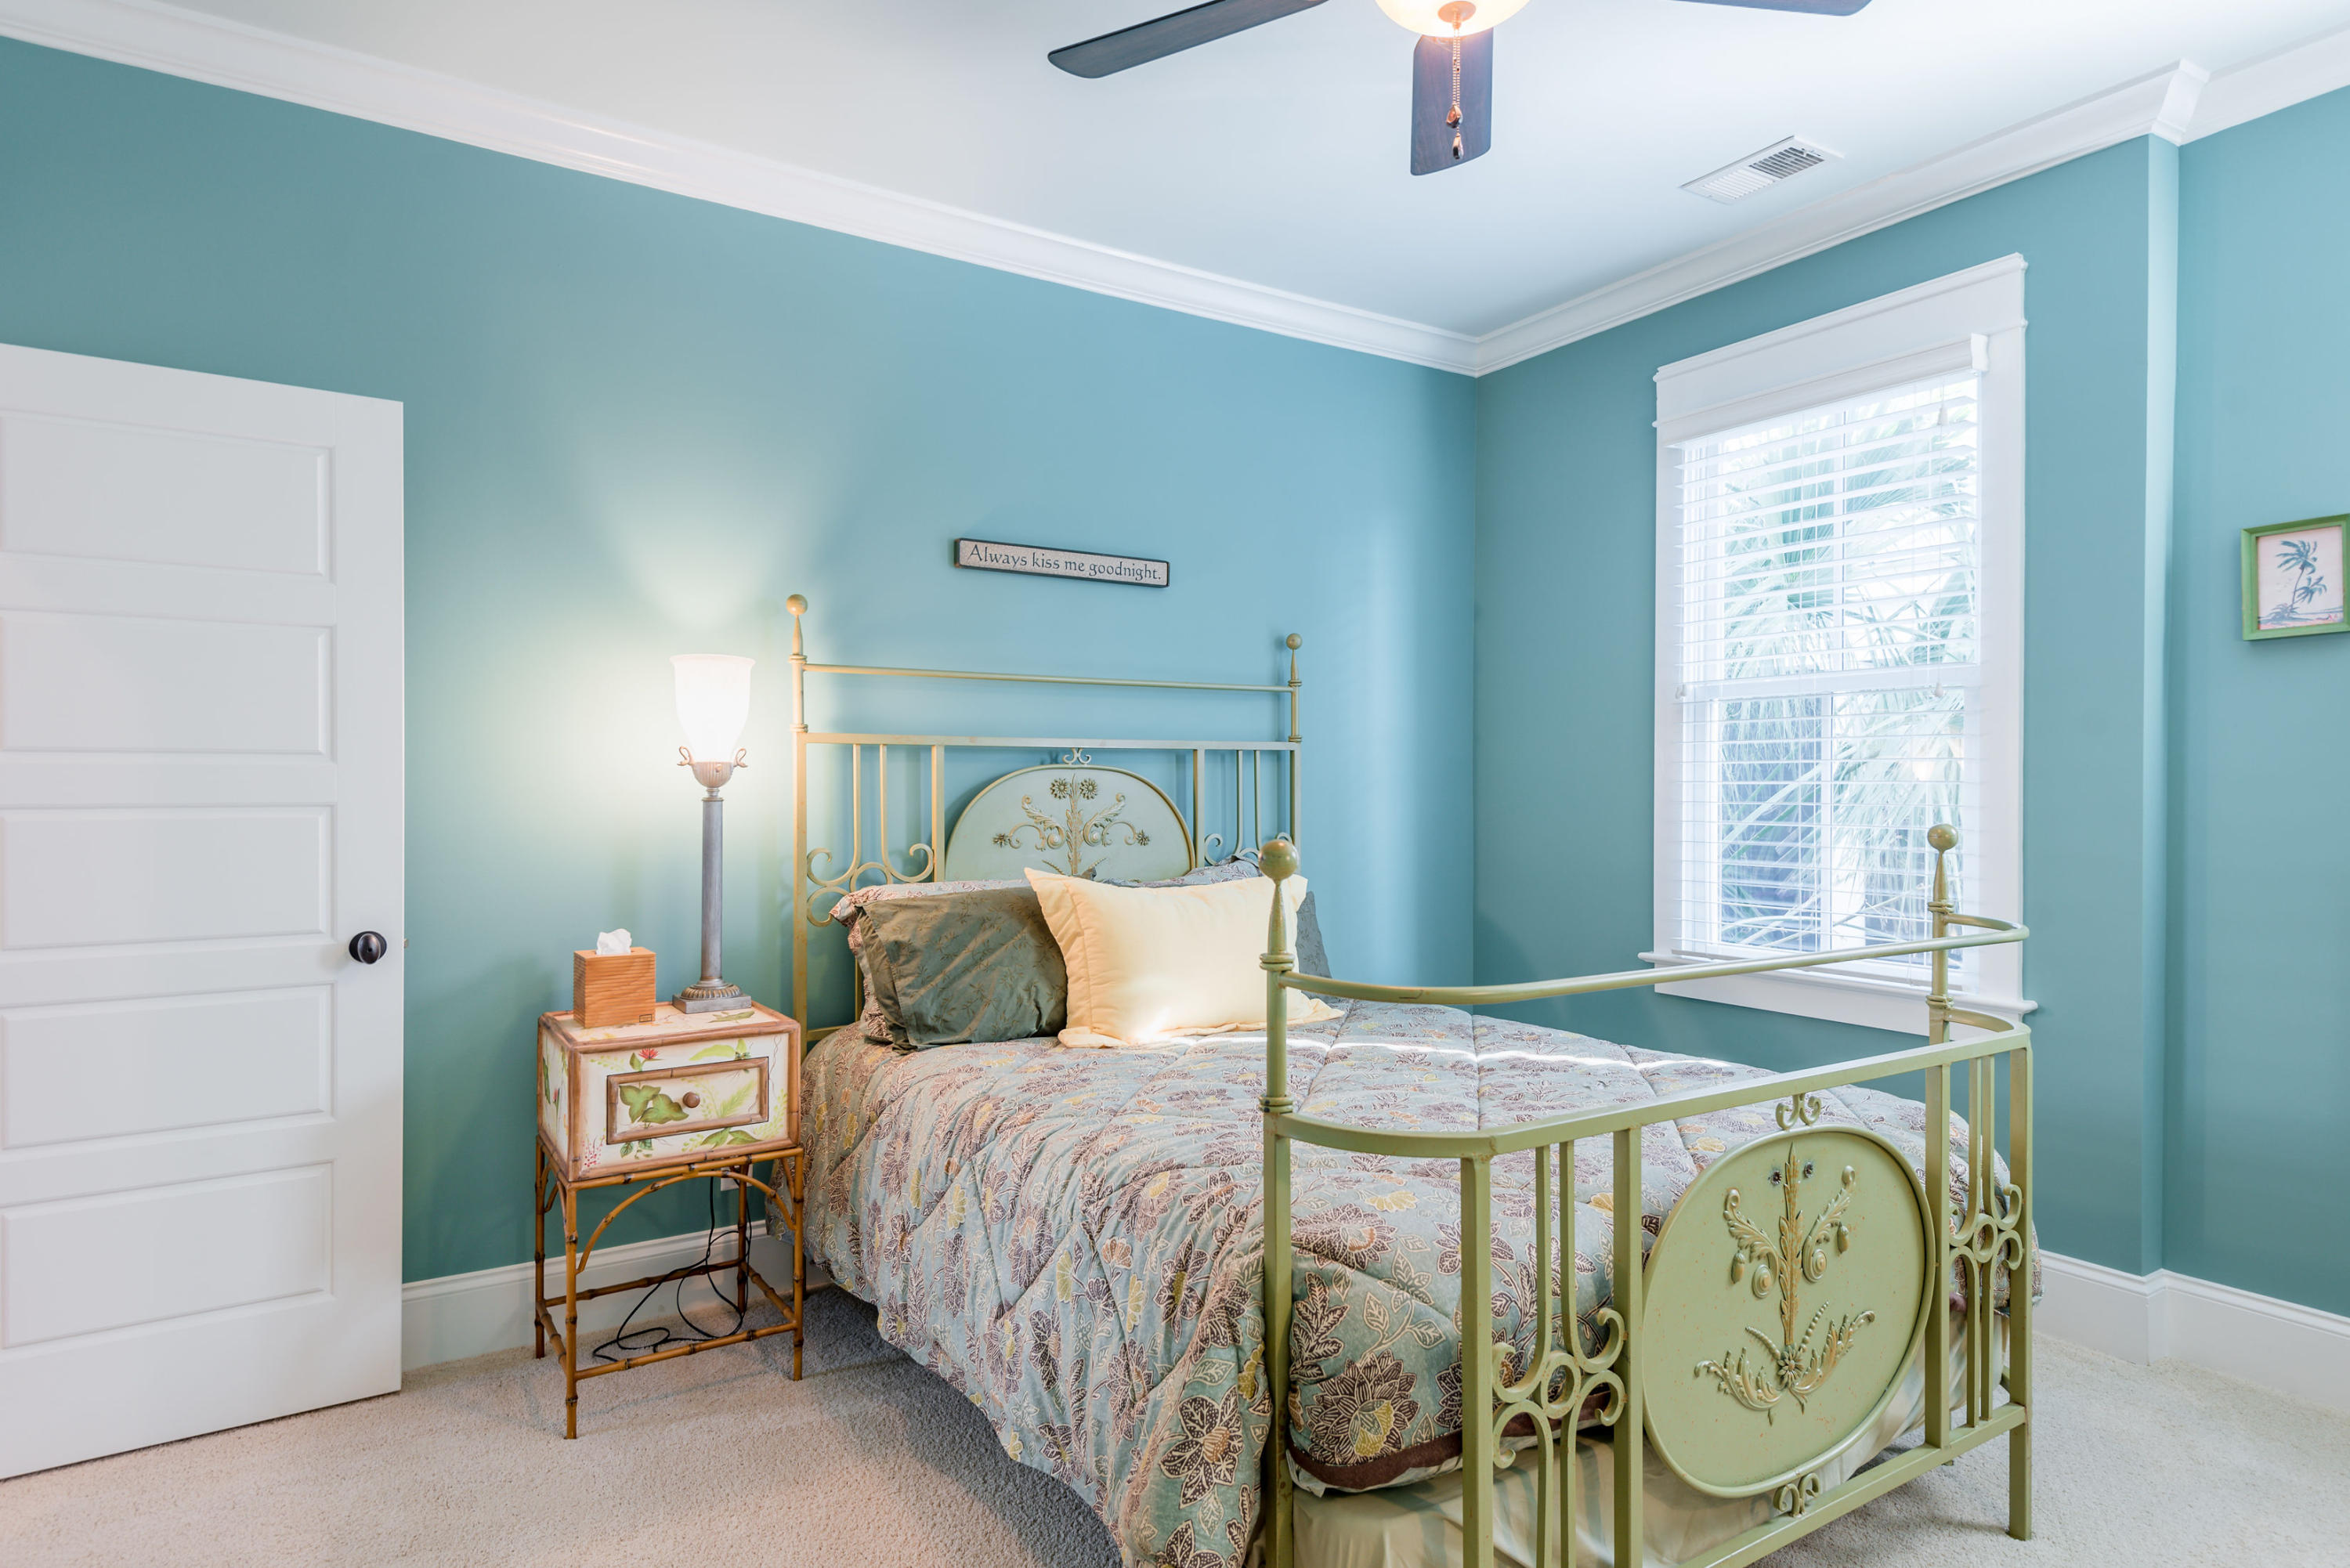 67 Sanibel Street Mount Pleasant, SC 29464